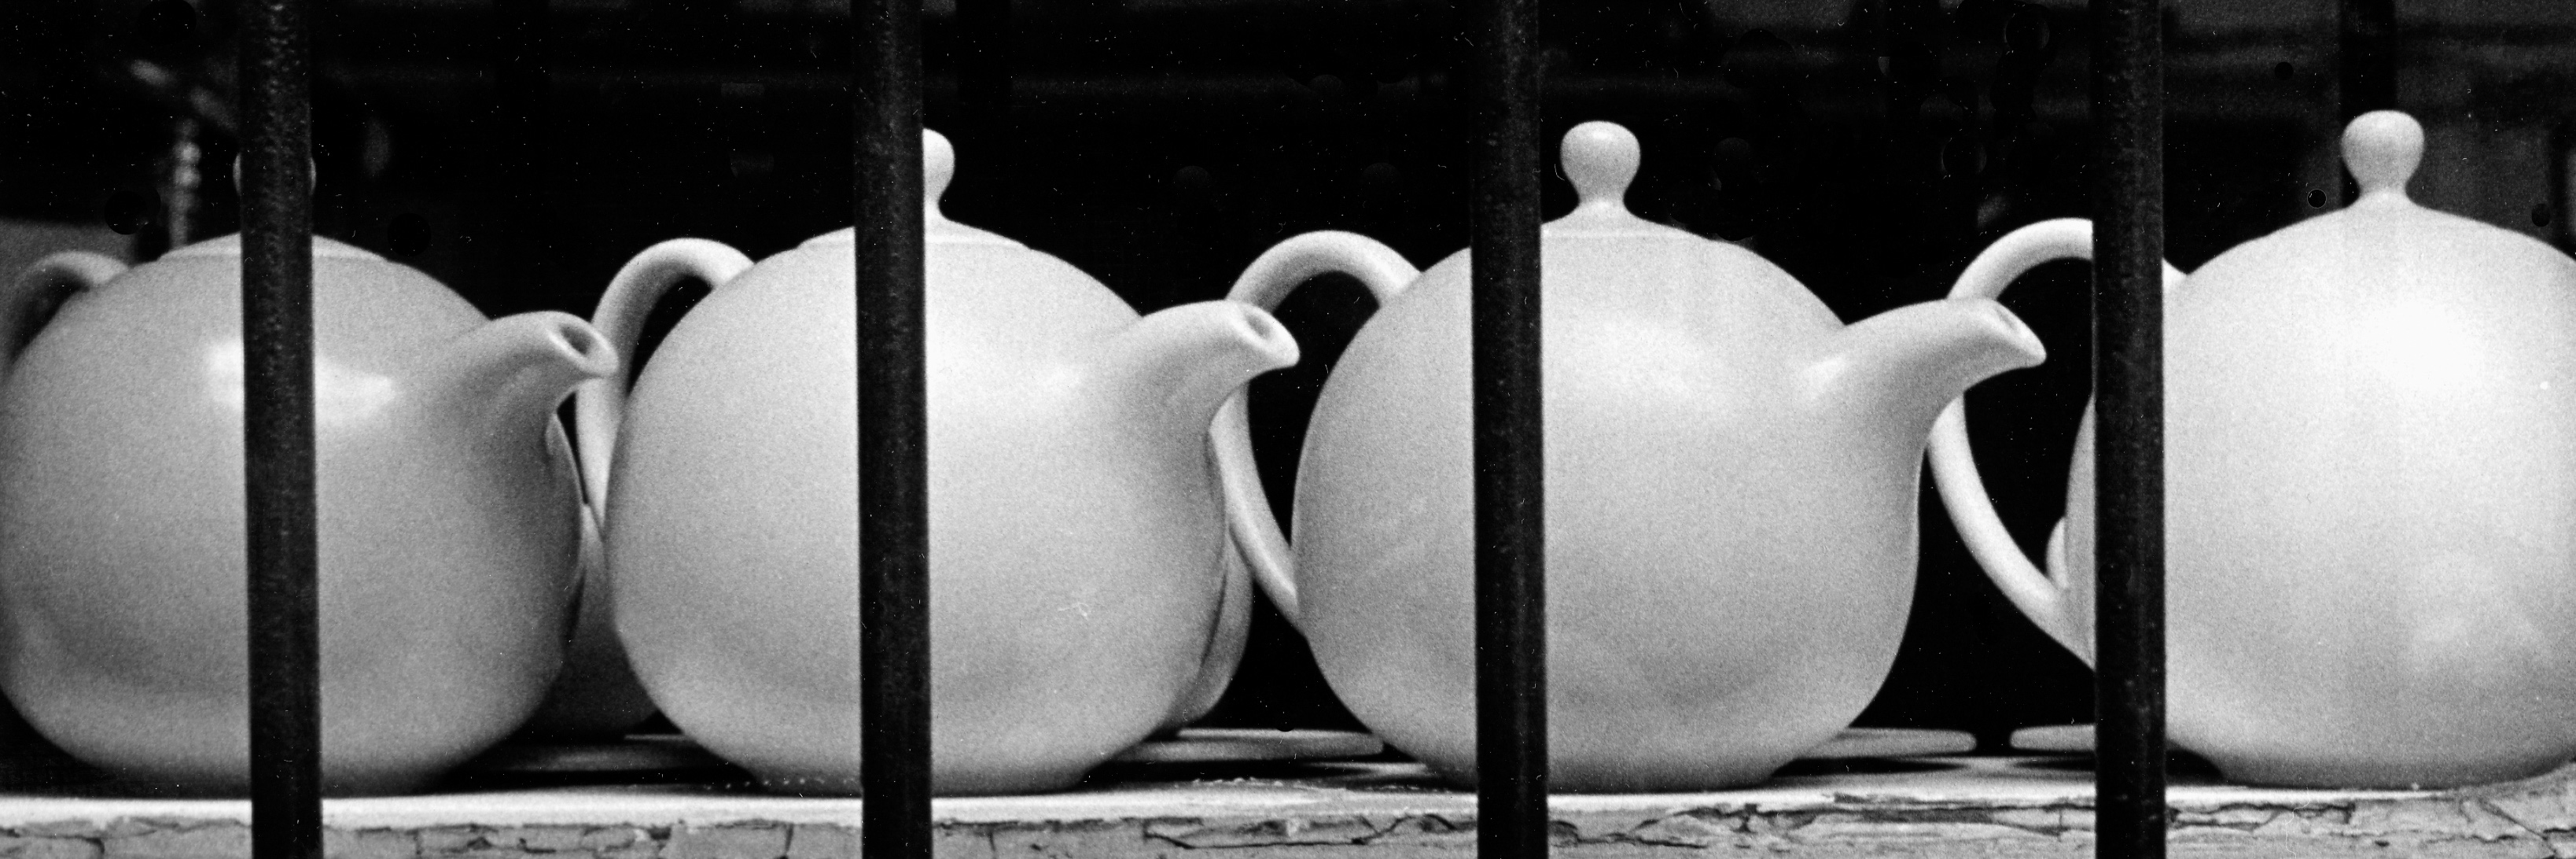 Tea Pots In Window.